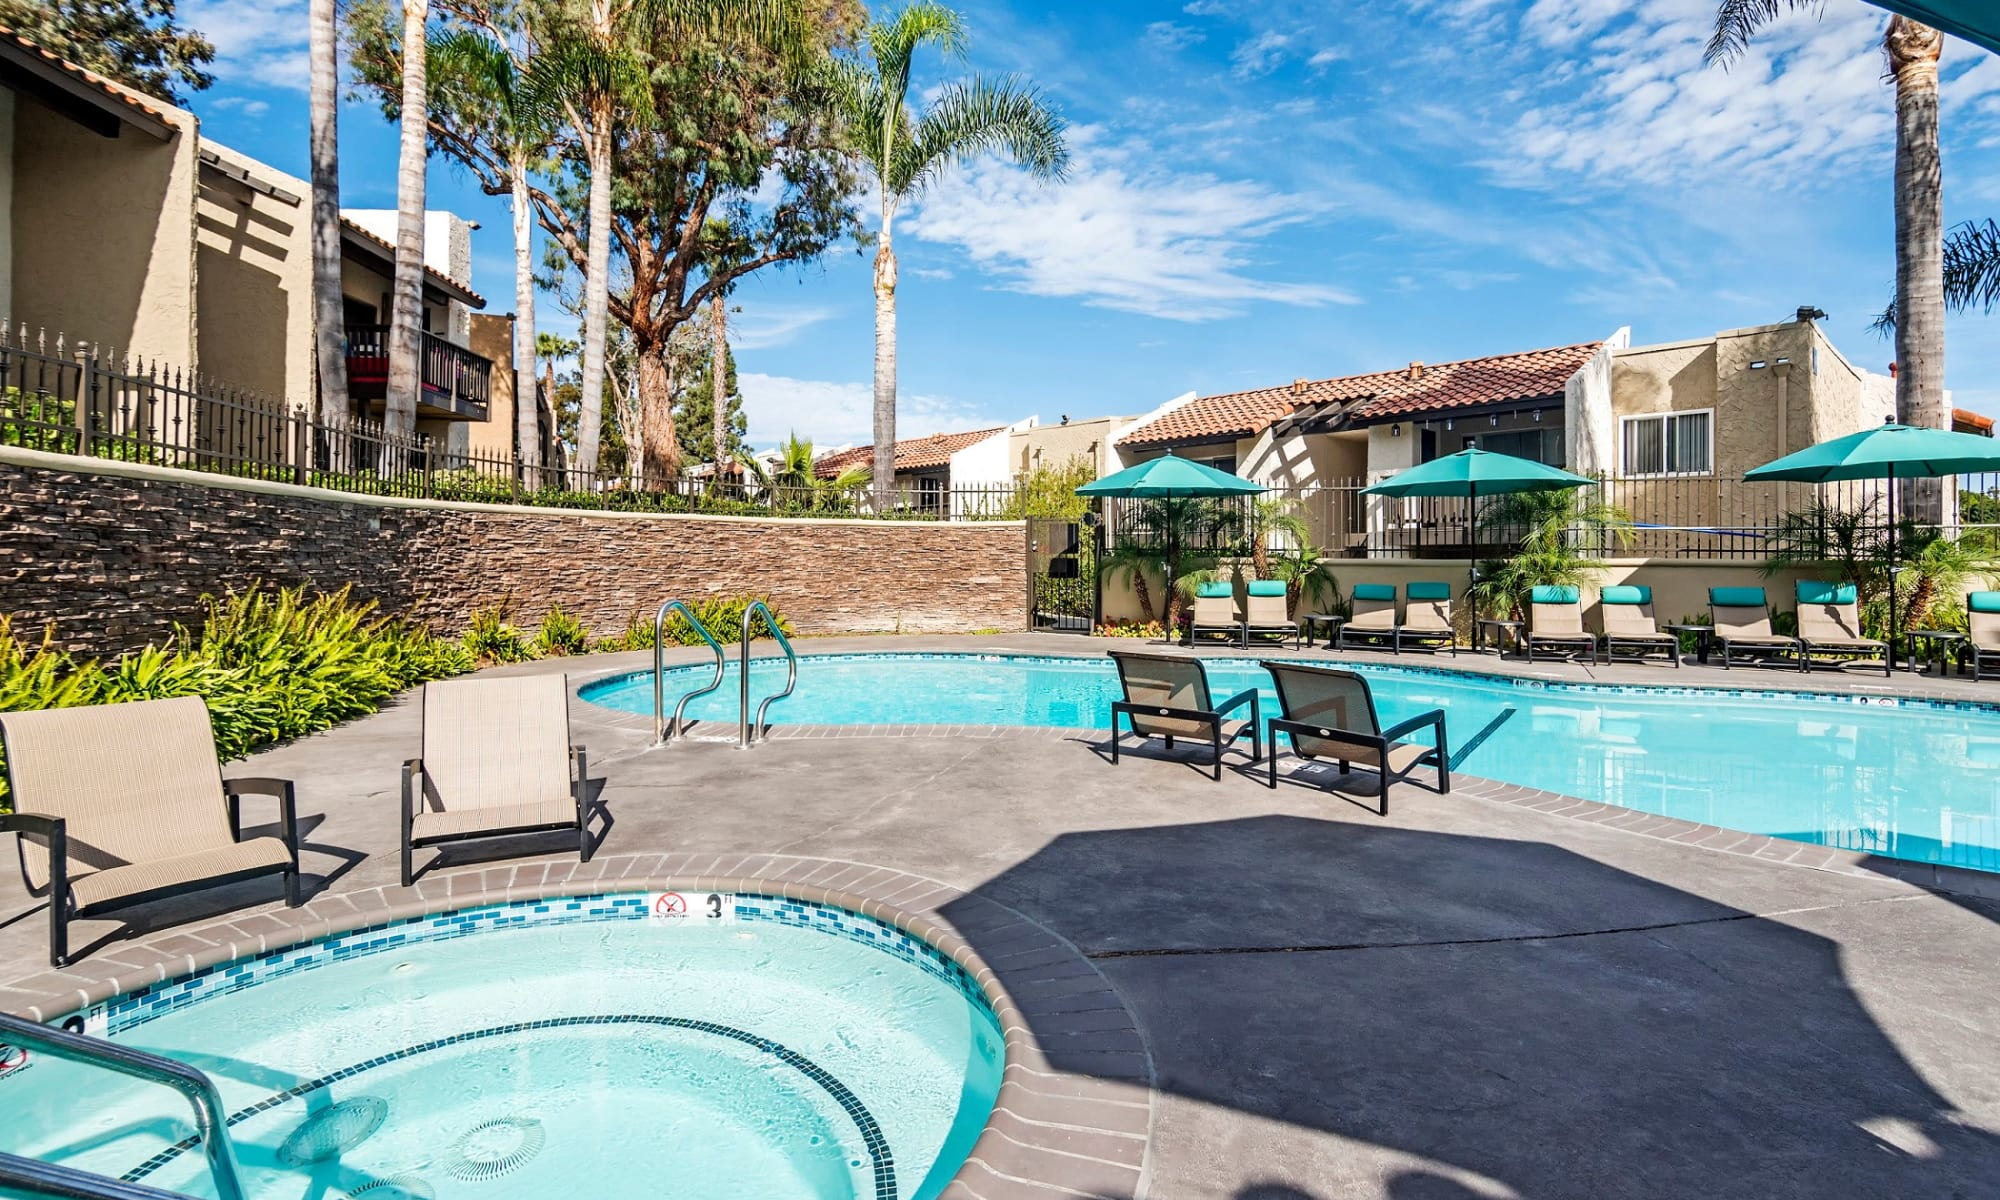 Apartments at Vue Oceanside in Oceanside, CA